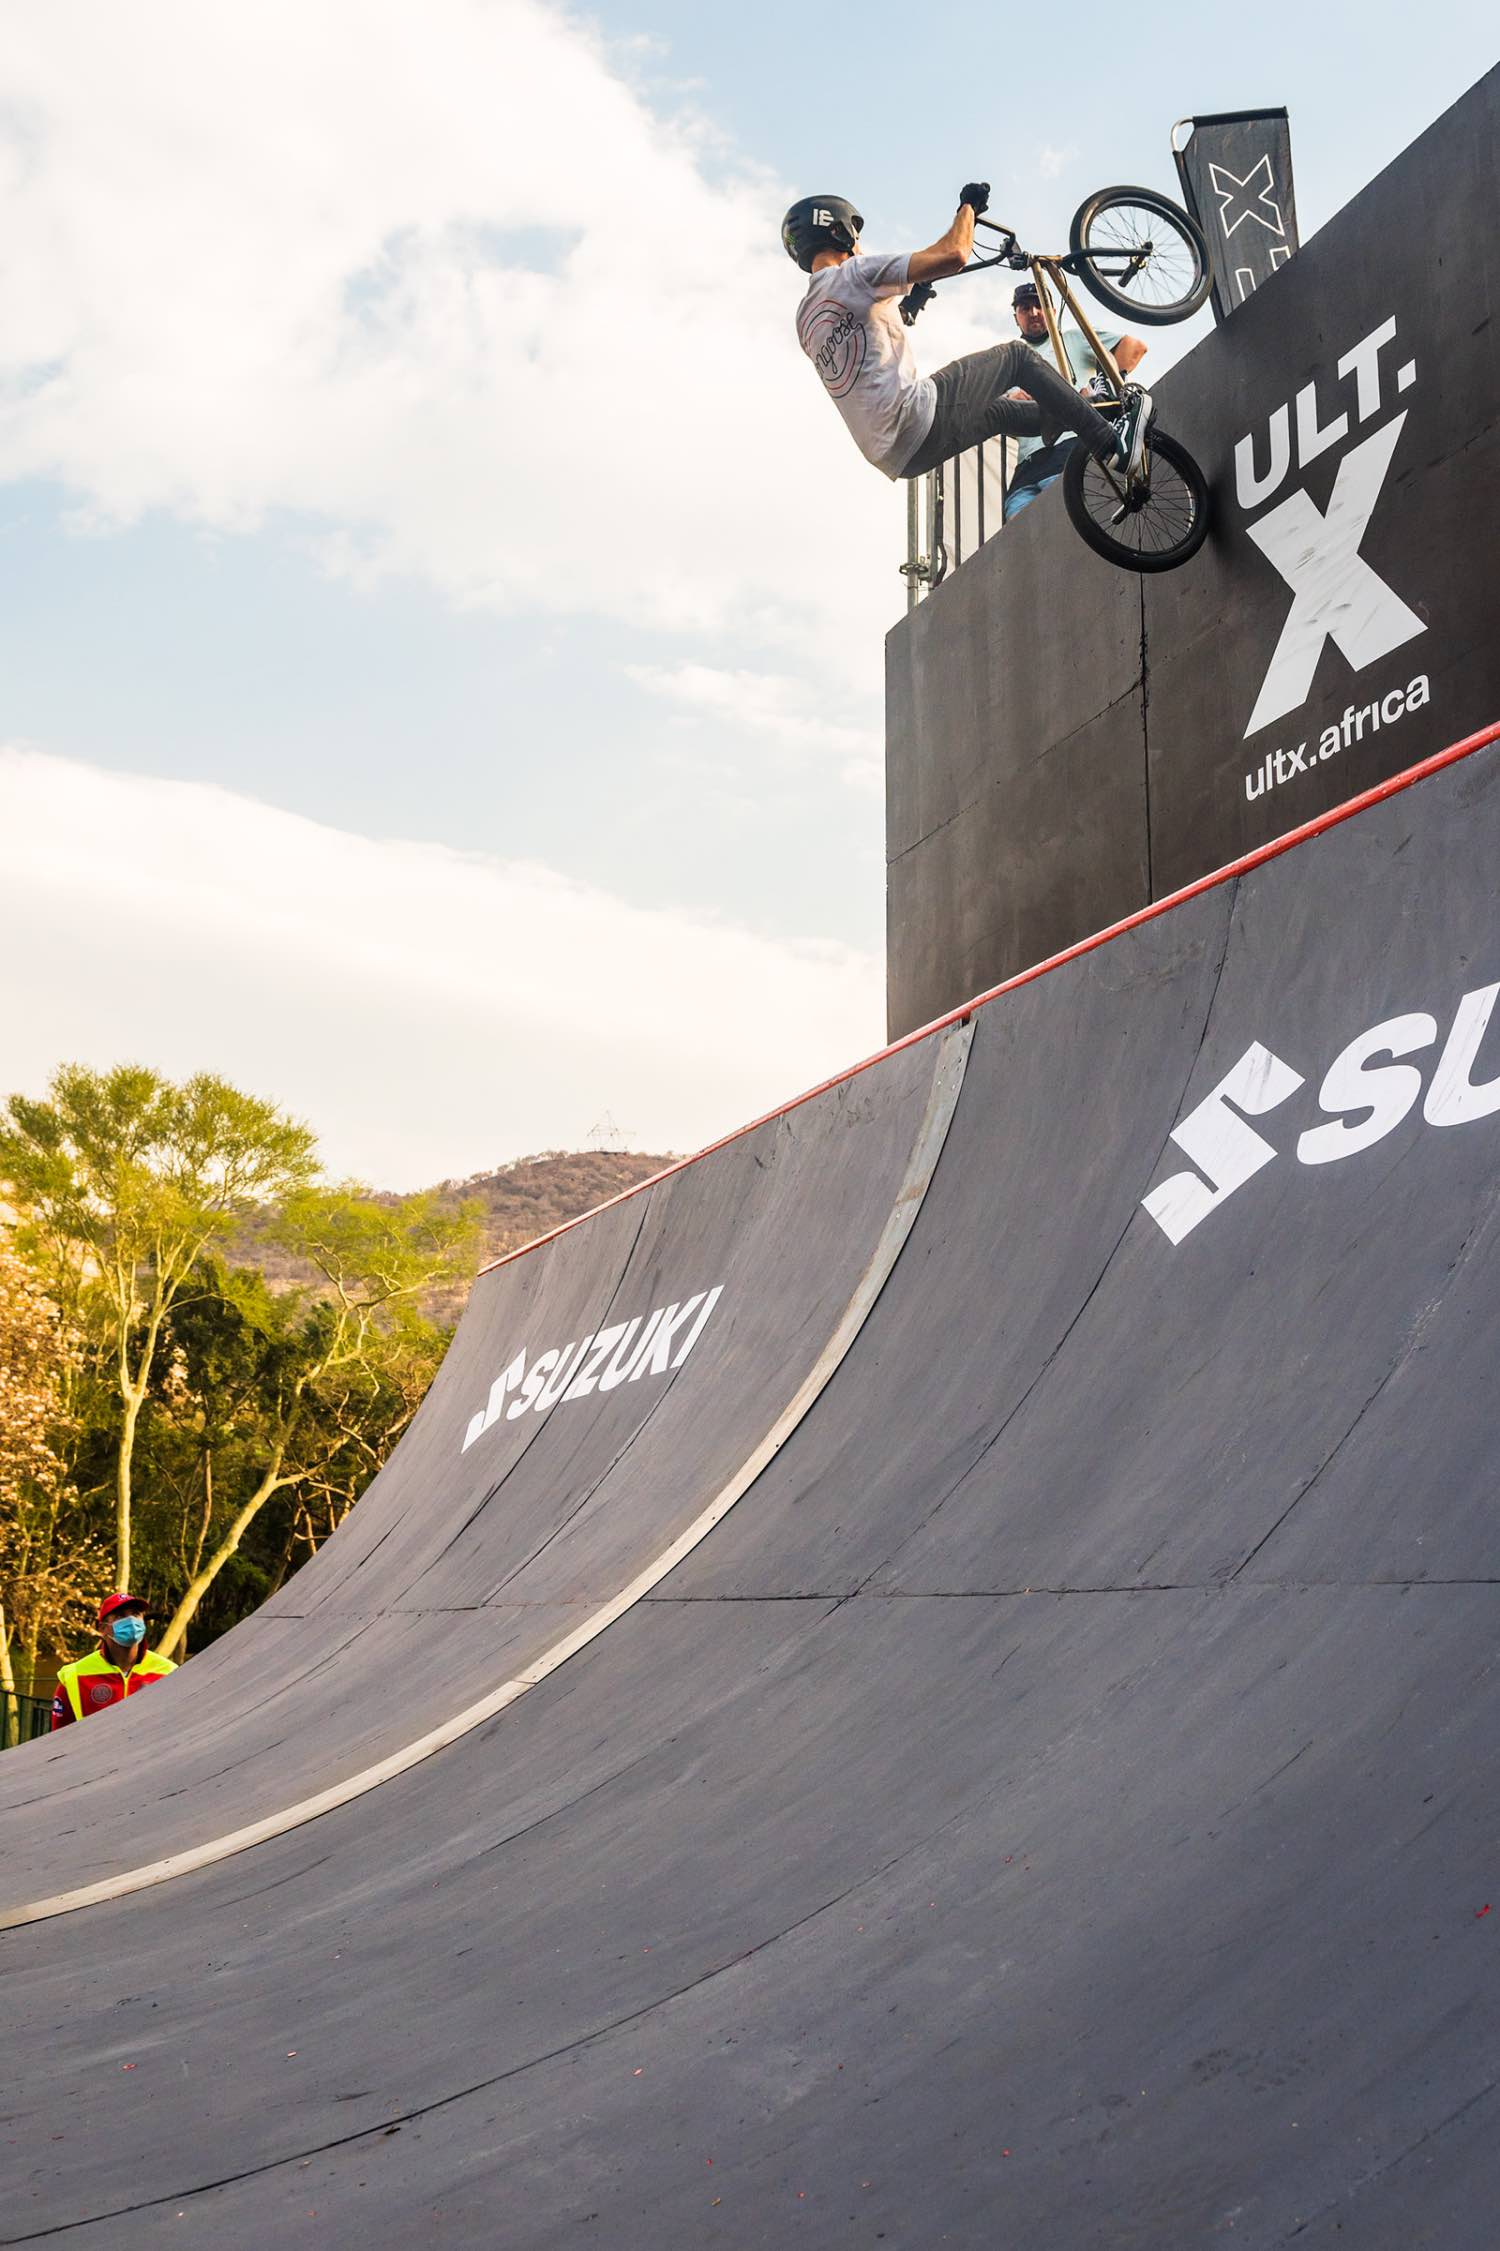 Francois Bodenstein competing in the BMX contest at ULT.X 2021